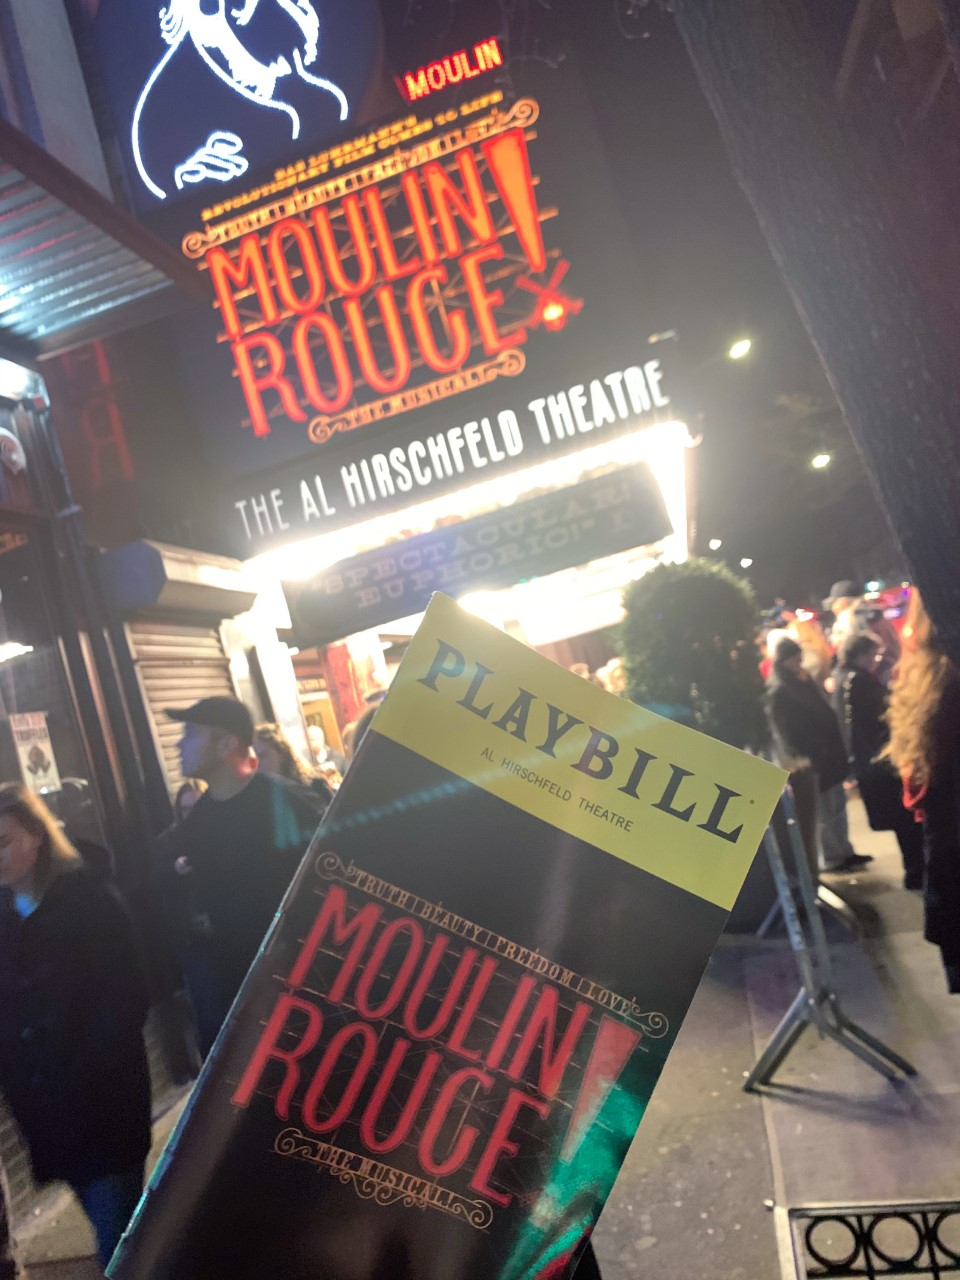 Moulin Rouge! The Musical Playbill